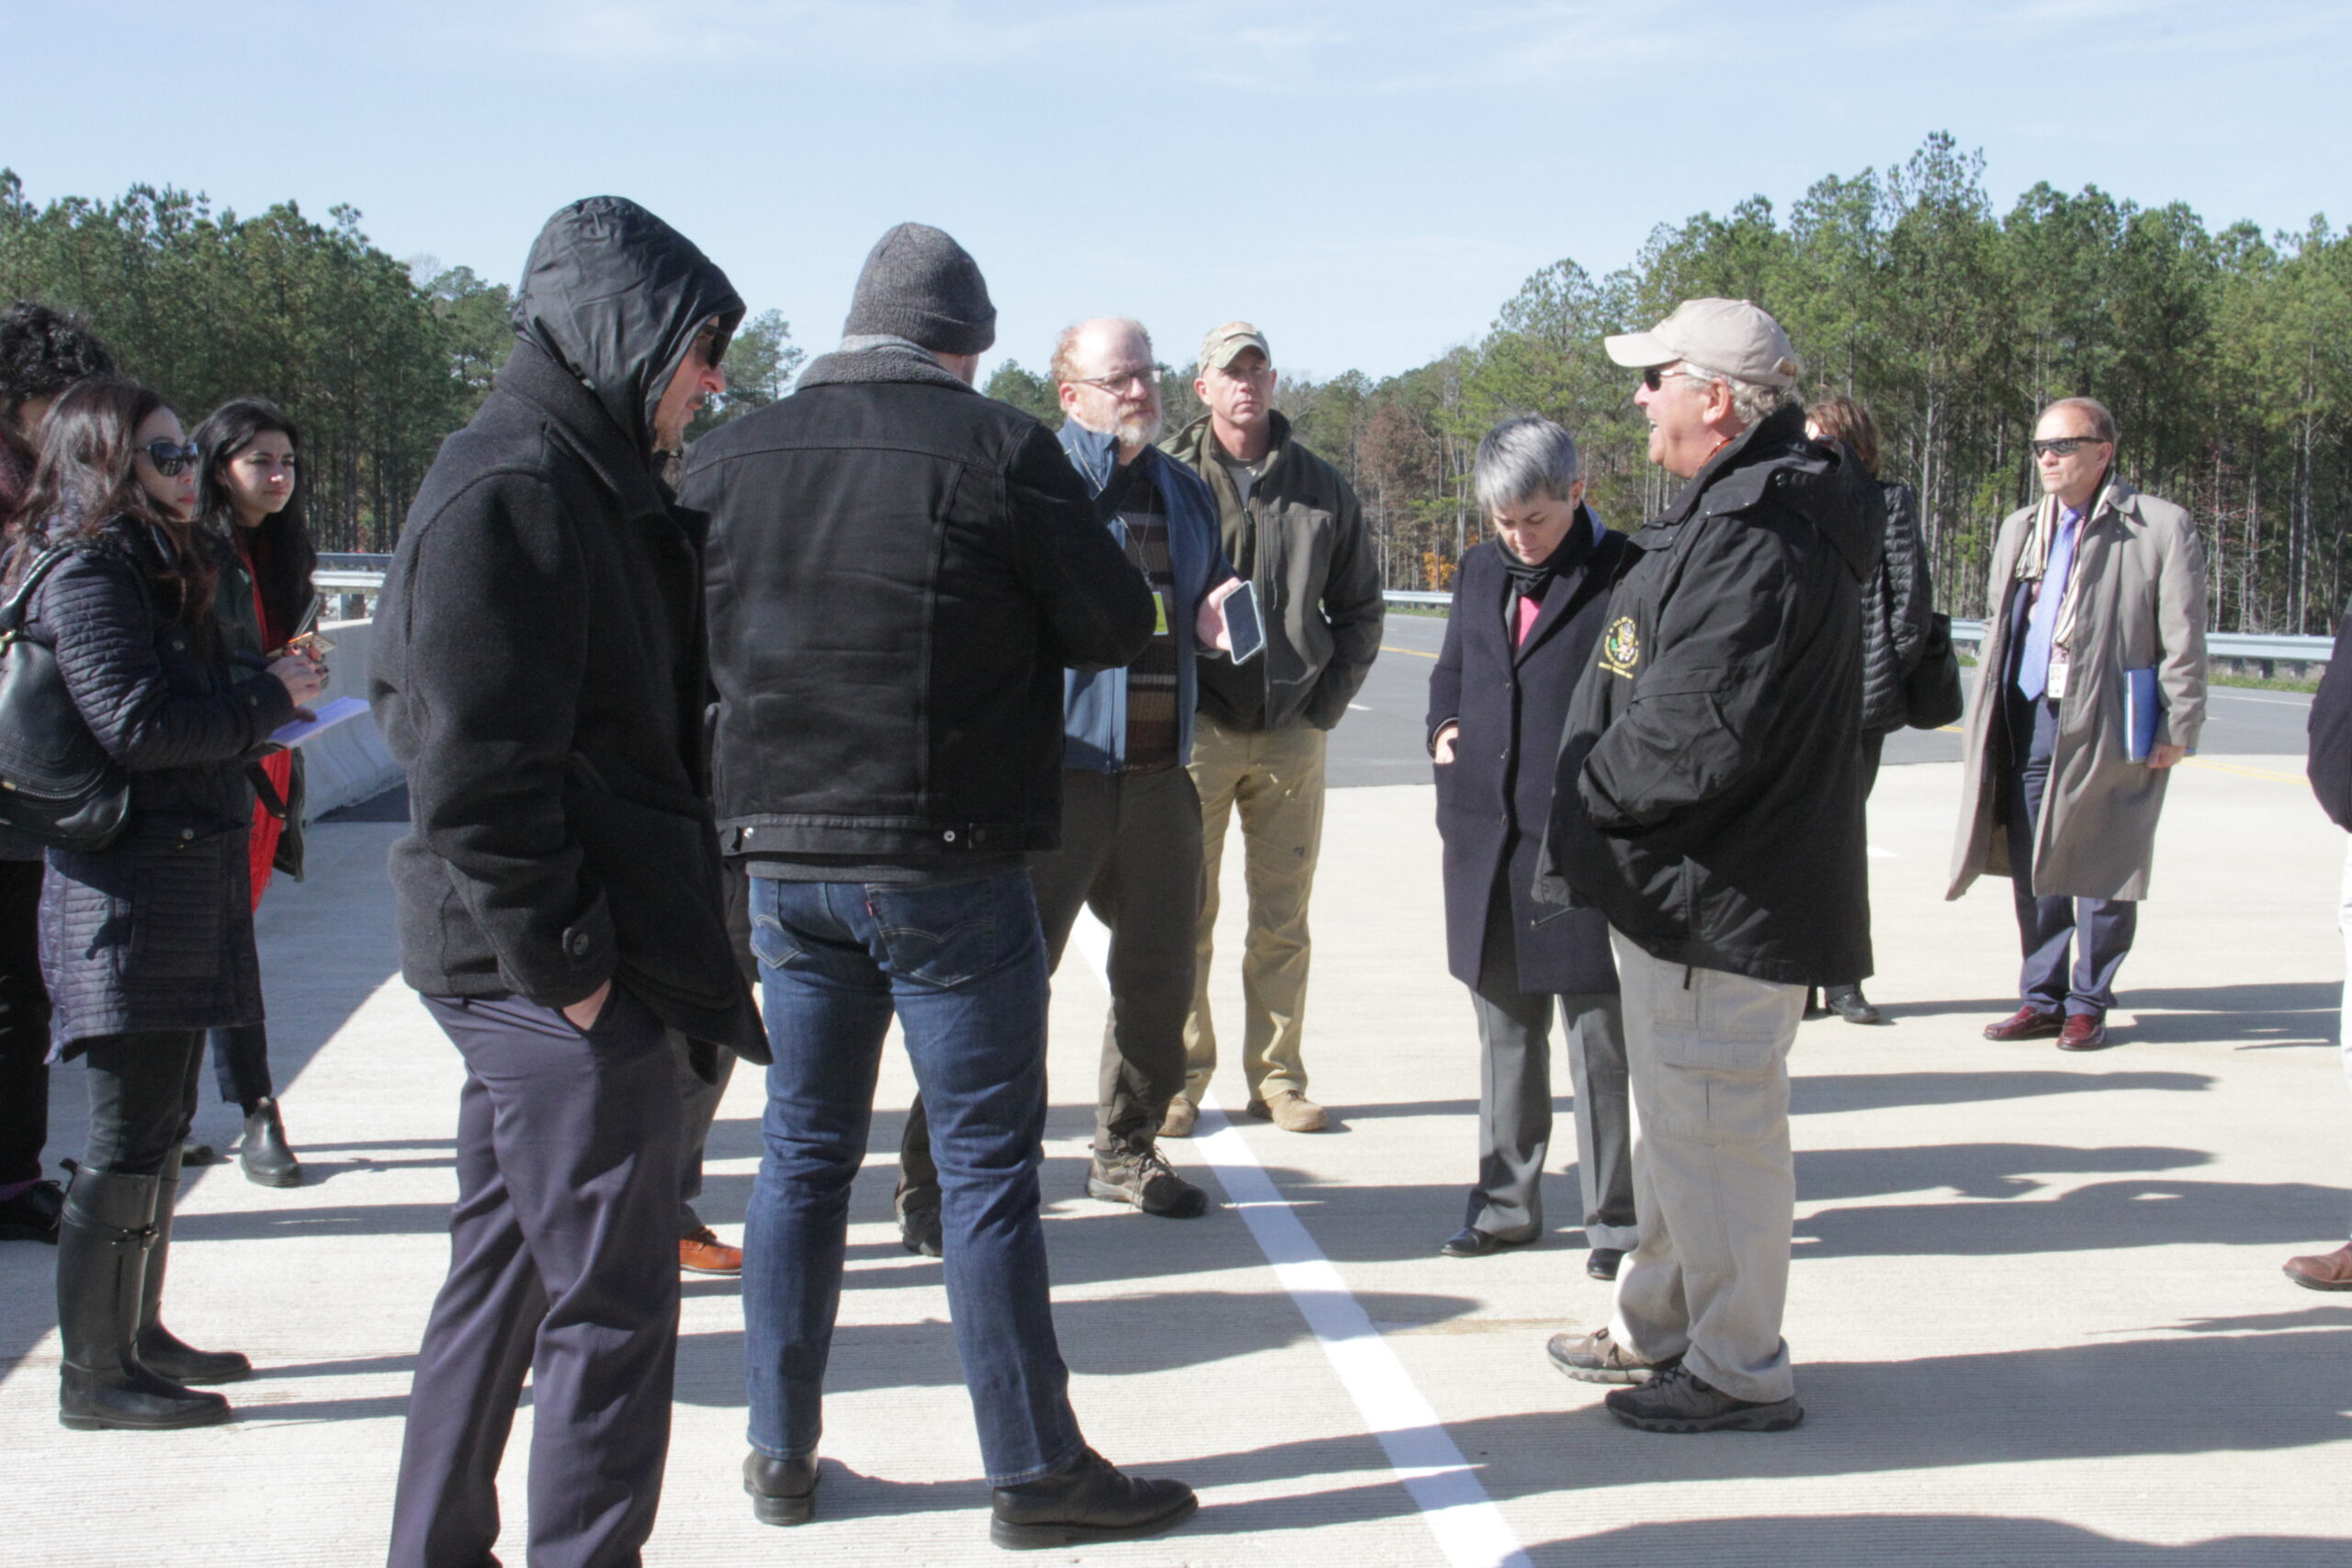 Maner Lawton, chief, Driver Training Unit, Diplomatic Security Service's (DSS) Foreign Affairs Security Training Center (right foreground, white cap), briefs reporters and DSS officials on DSS driver